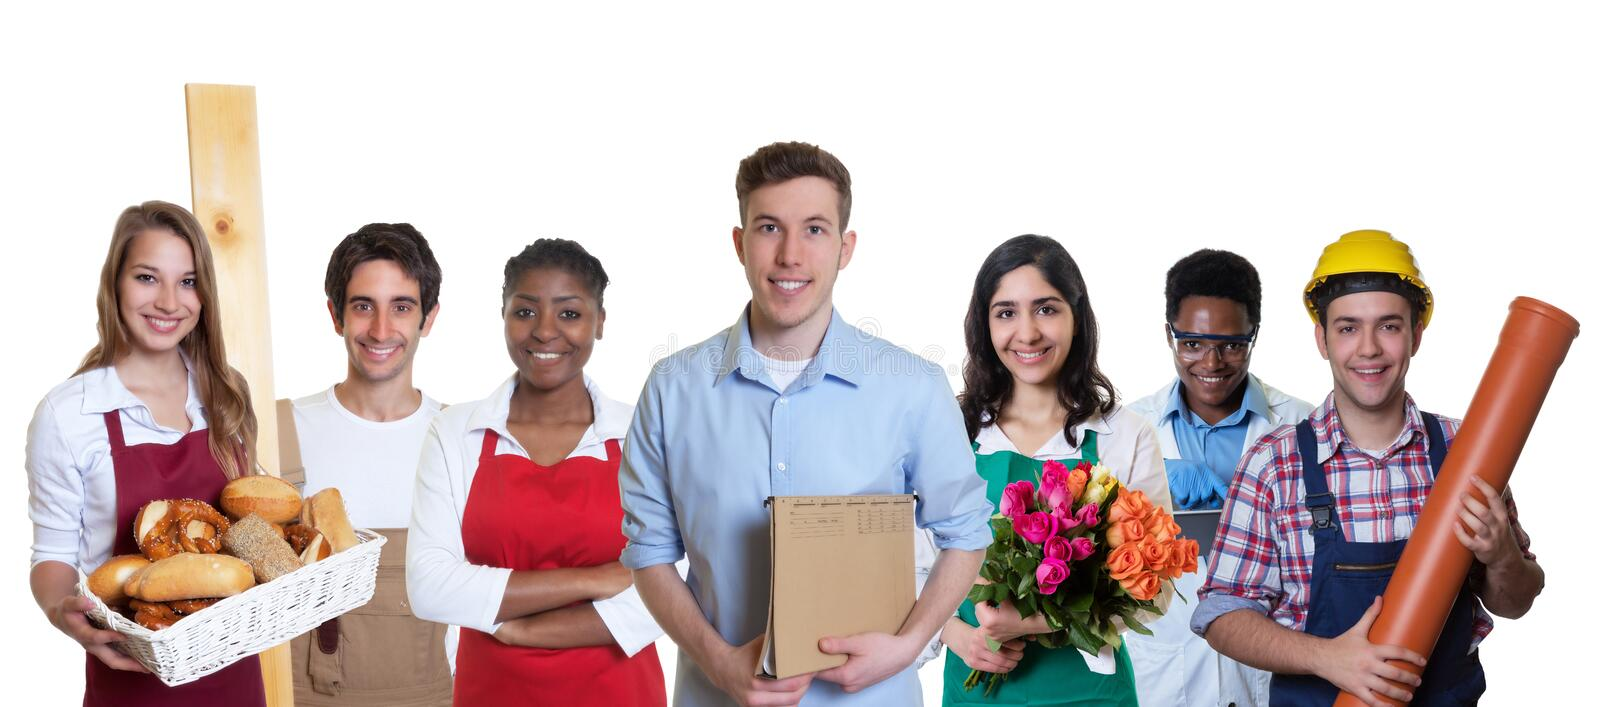 Male business trainee with group of apprentices stock image